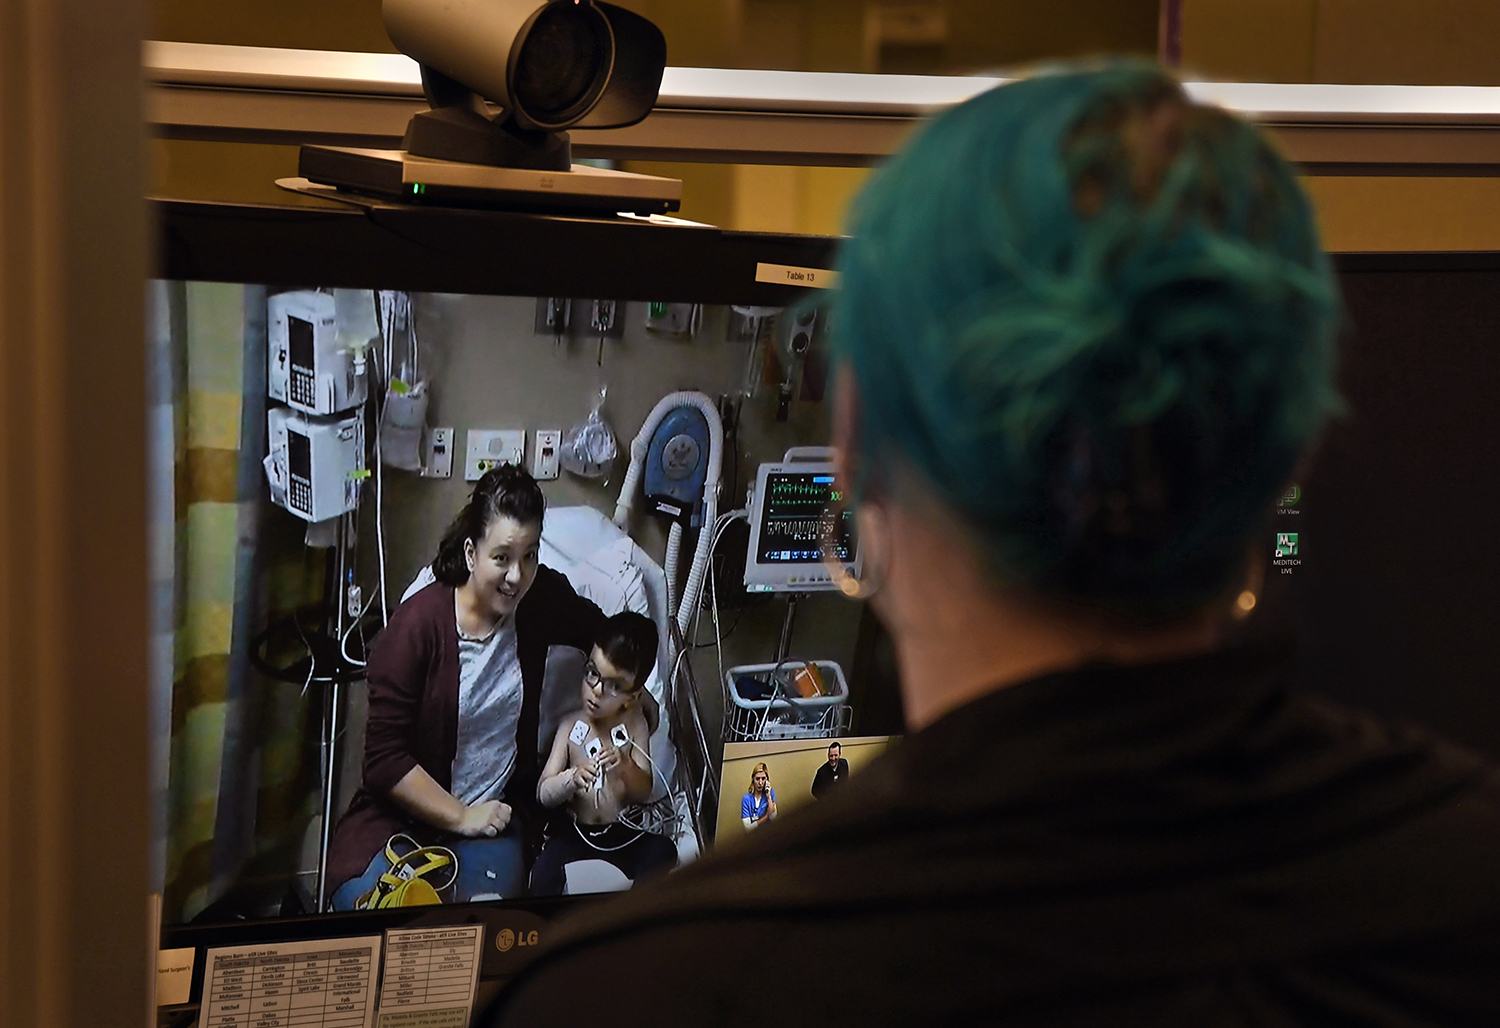 A nurse talks via video from Sioux Falls, South Dakota, with a woman in Abilene, Kansas, hundreds of miles away, who needed a consultation for her 4-year-old son on Oct. 16, 2019.